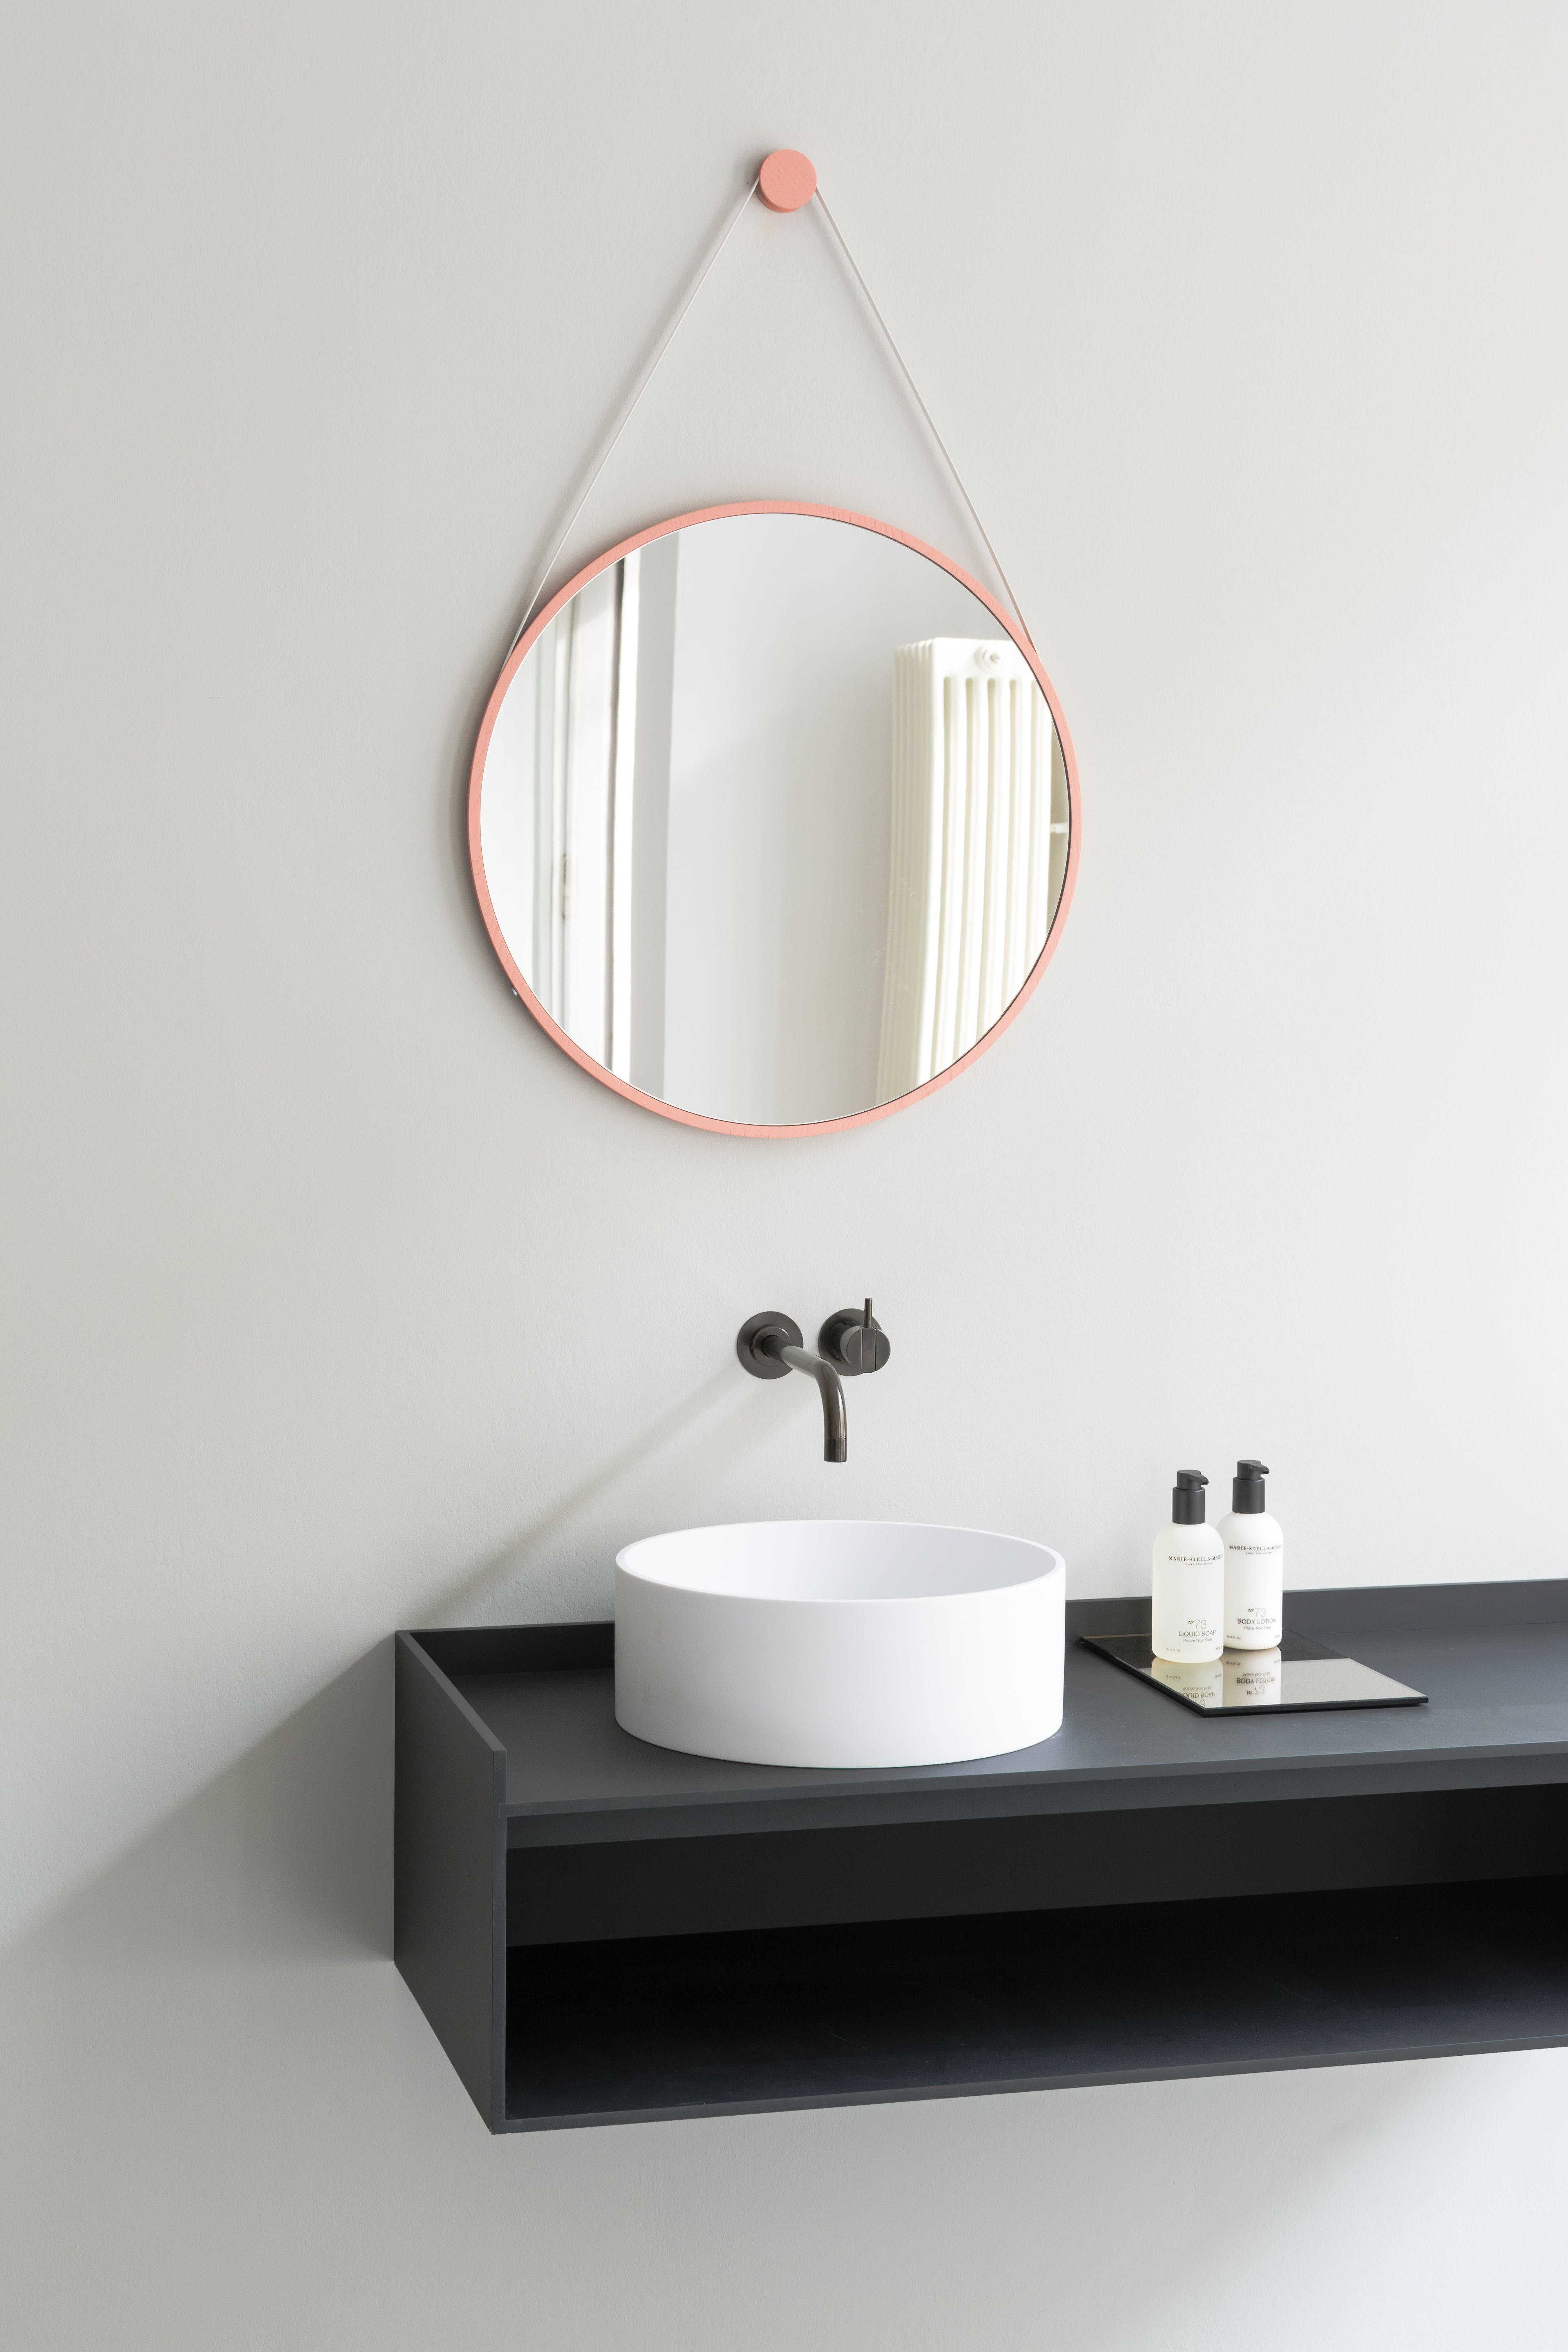 COCOON black bathroom design inspiration | stainless steel bathroom ...